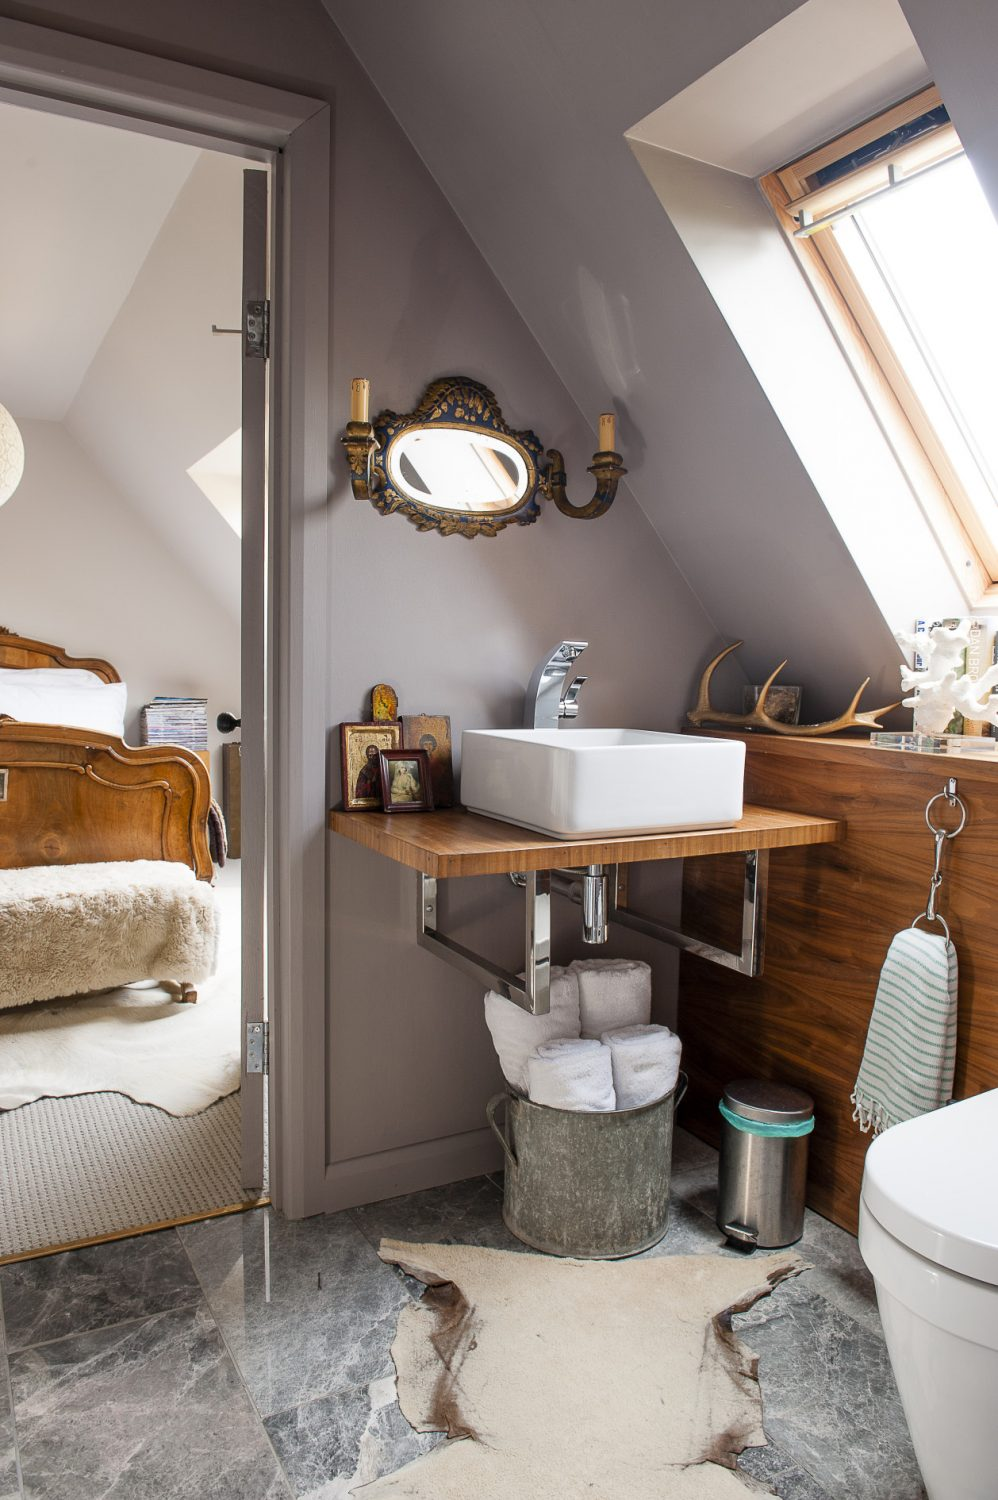 The 'Jack and Jill' bathroom can be entered from both guest rooms.